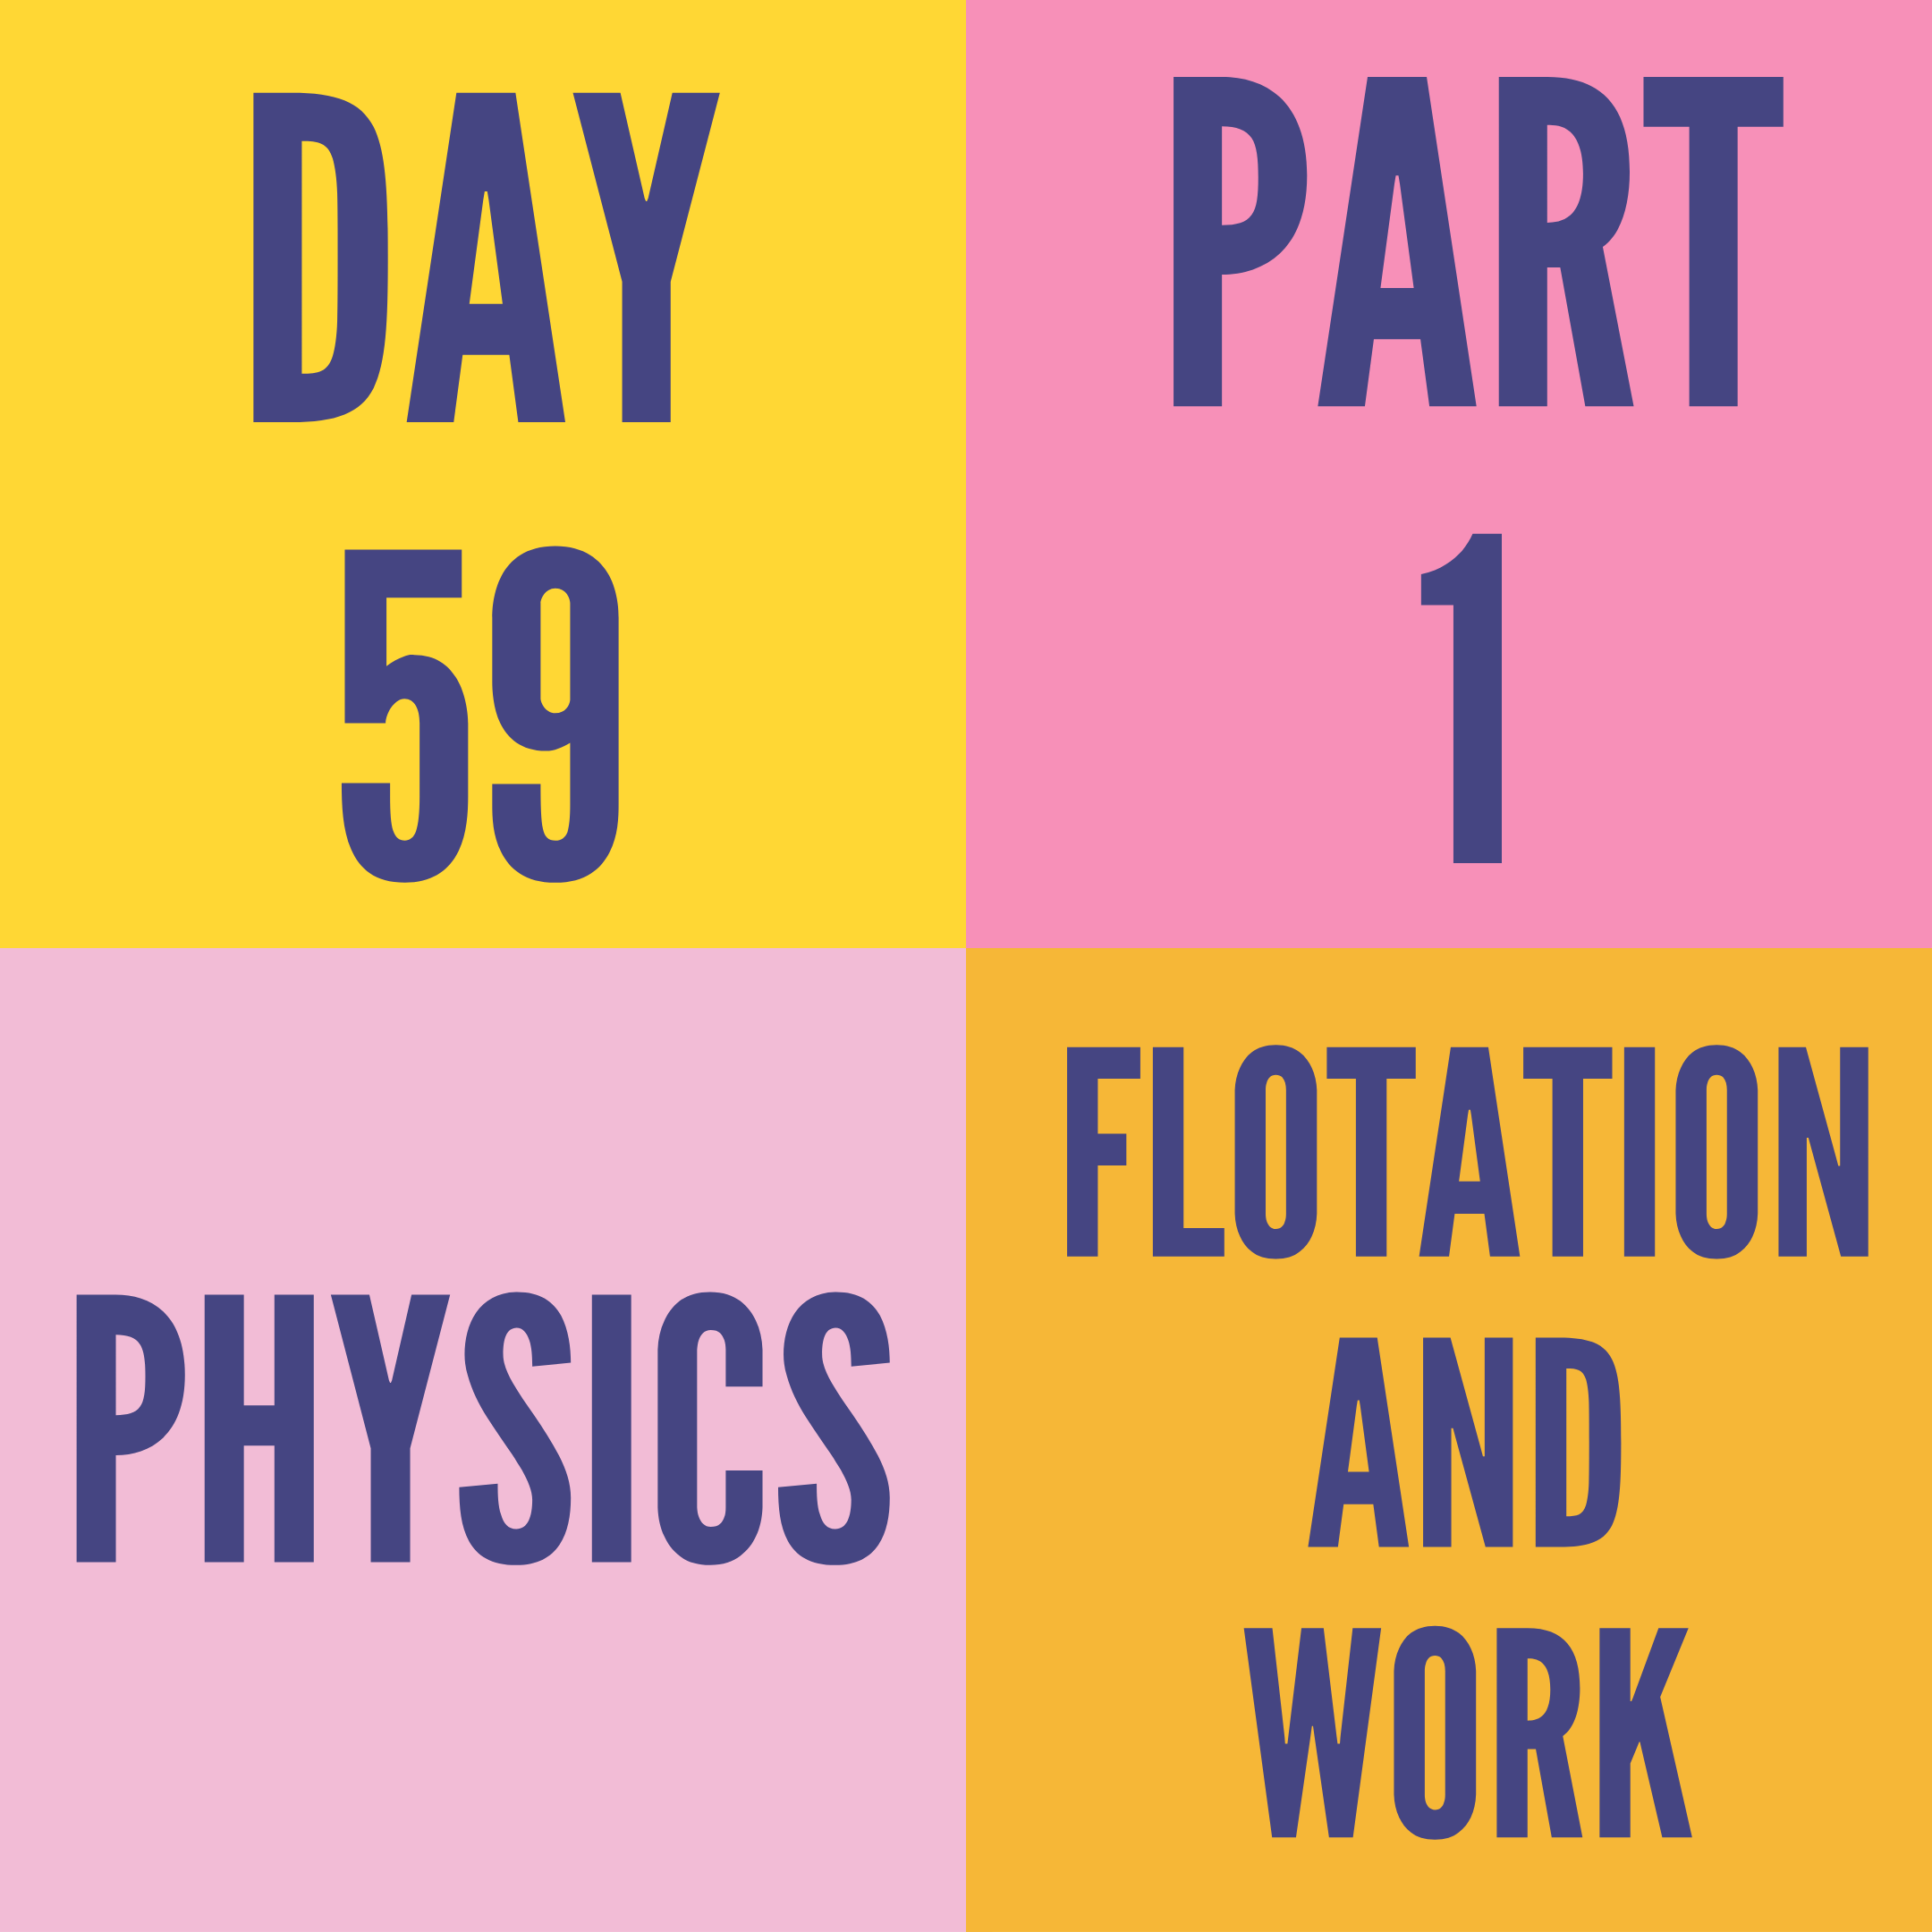 DAY-59 PART-1 FLOTATION AND WORK